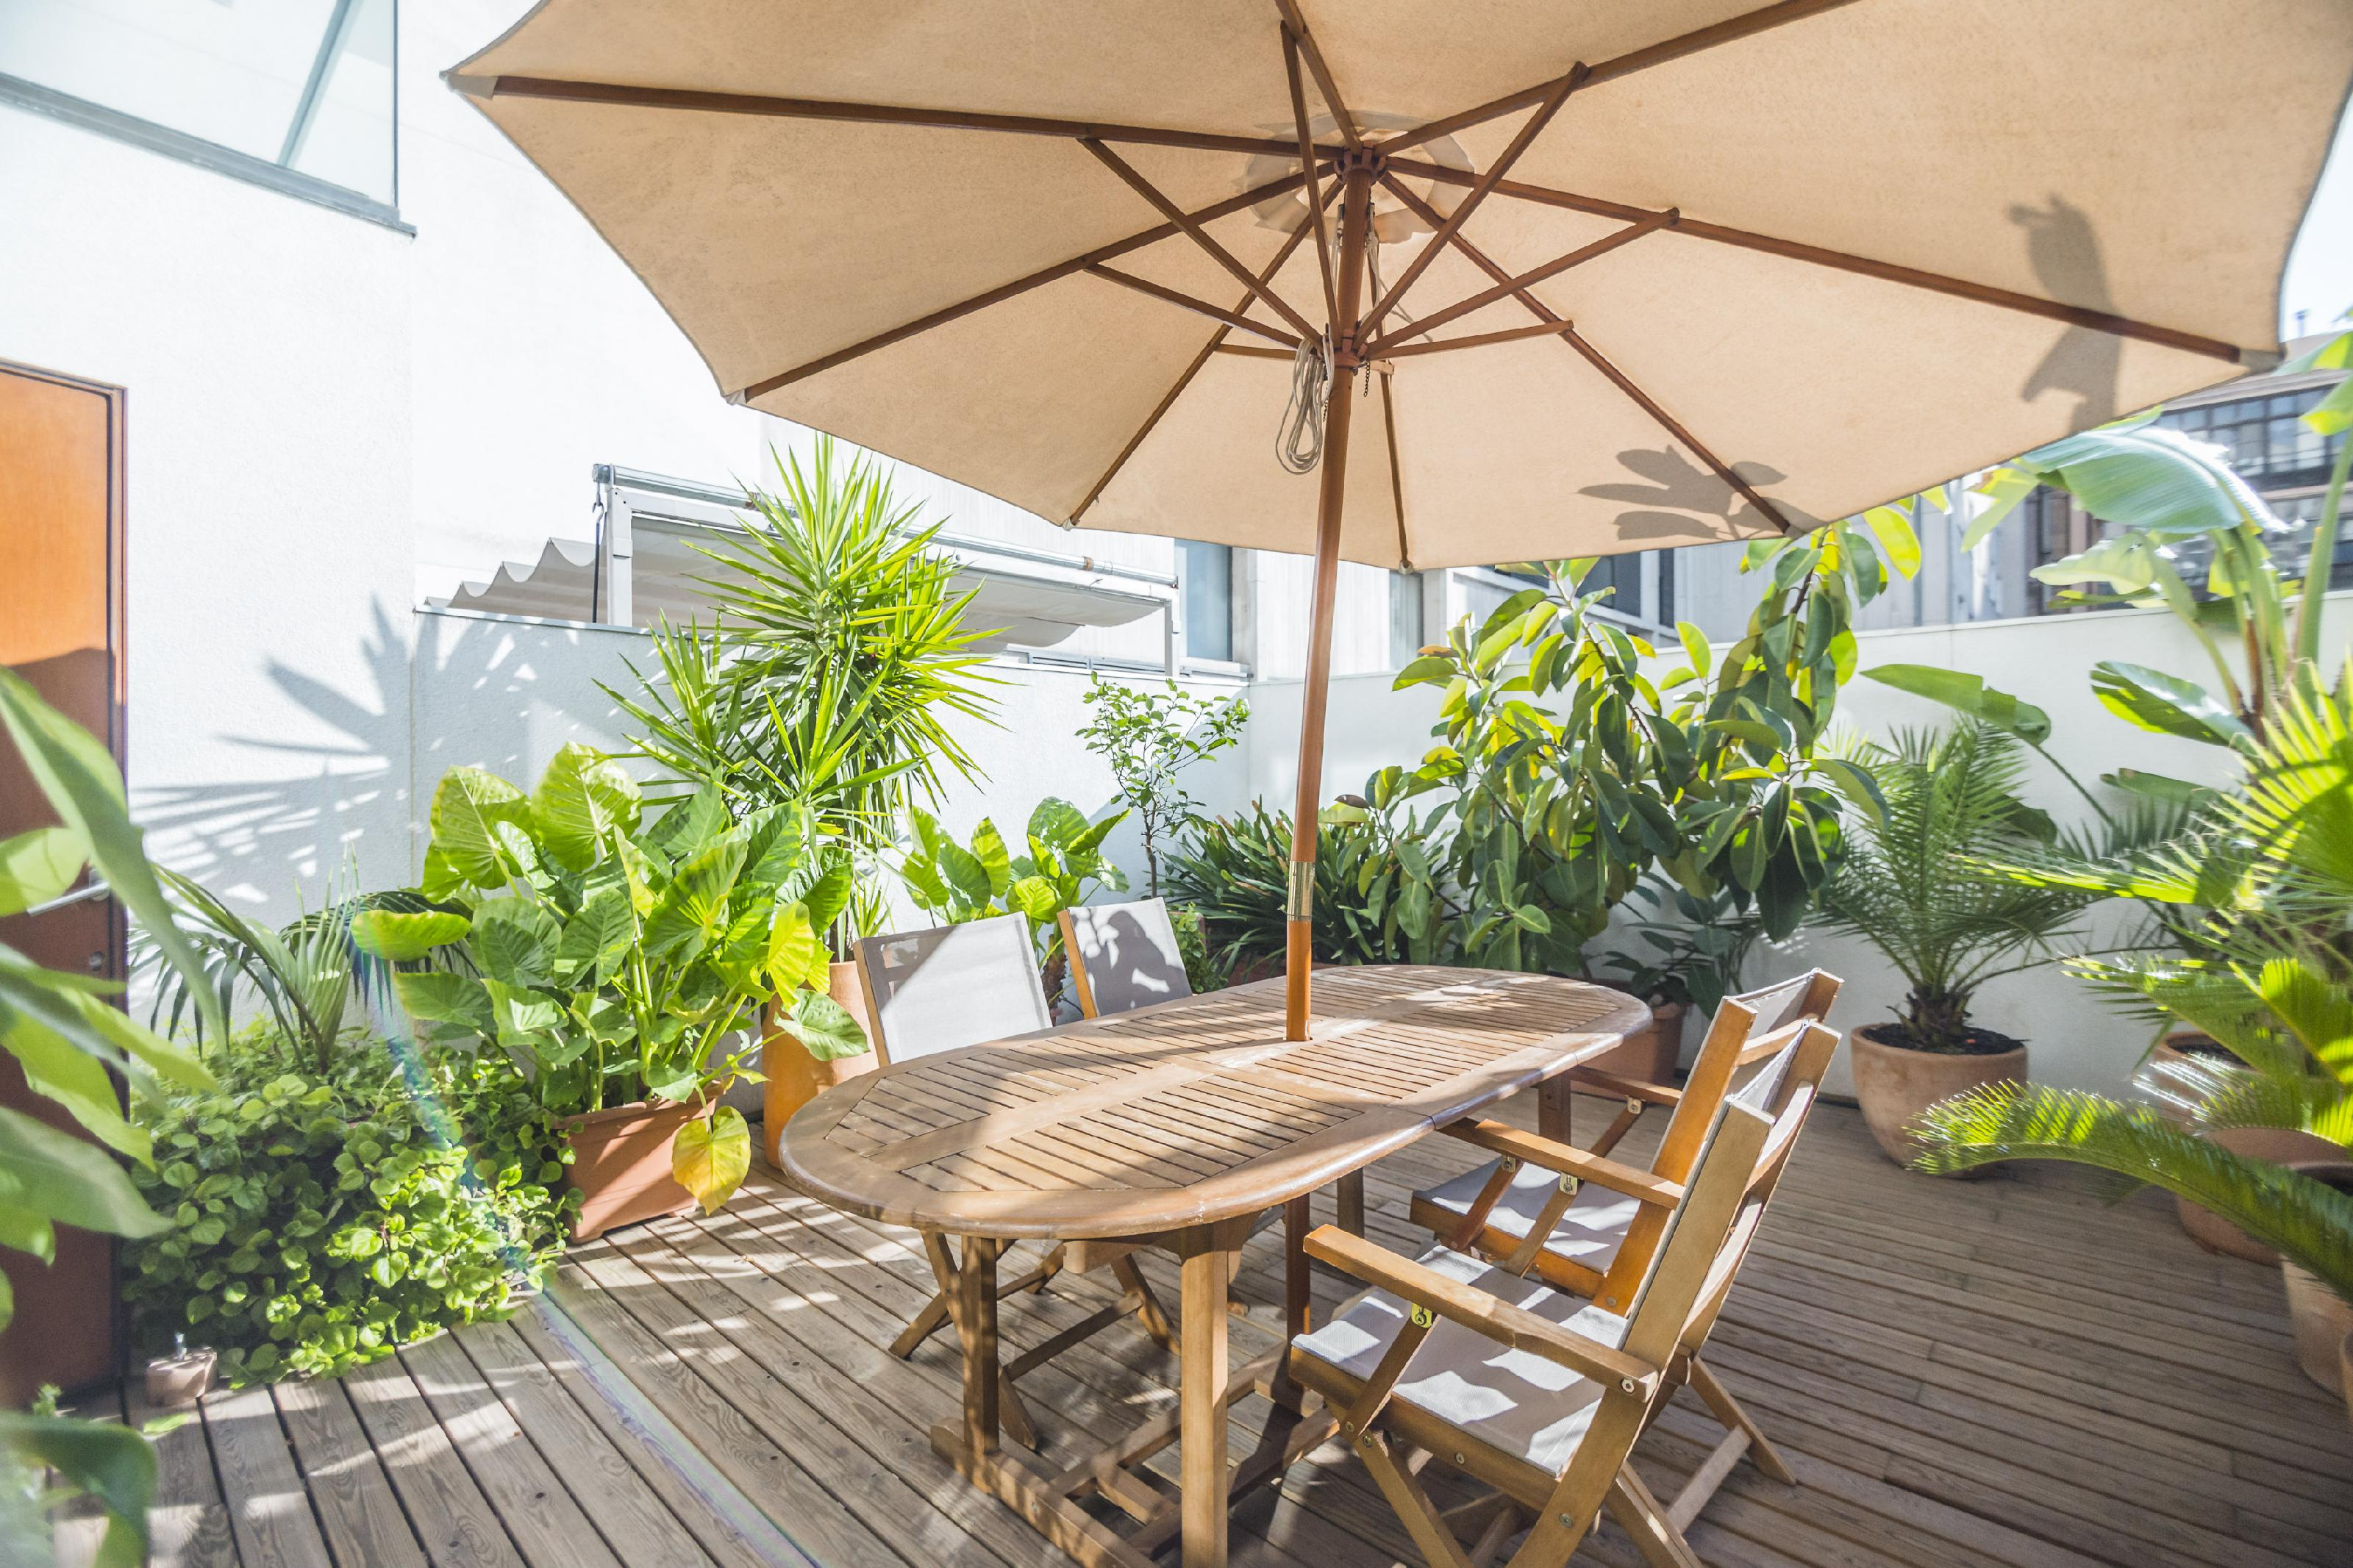 109651 Apartment for sale in Eixample, Dreta Eixample 3